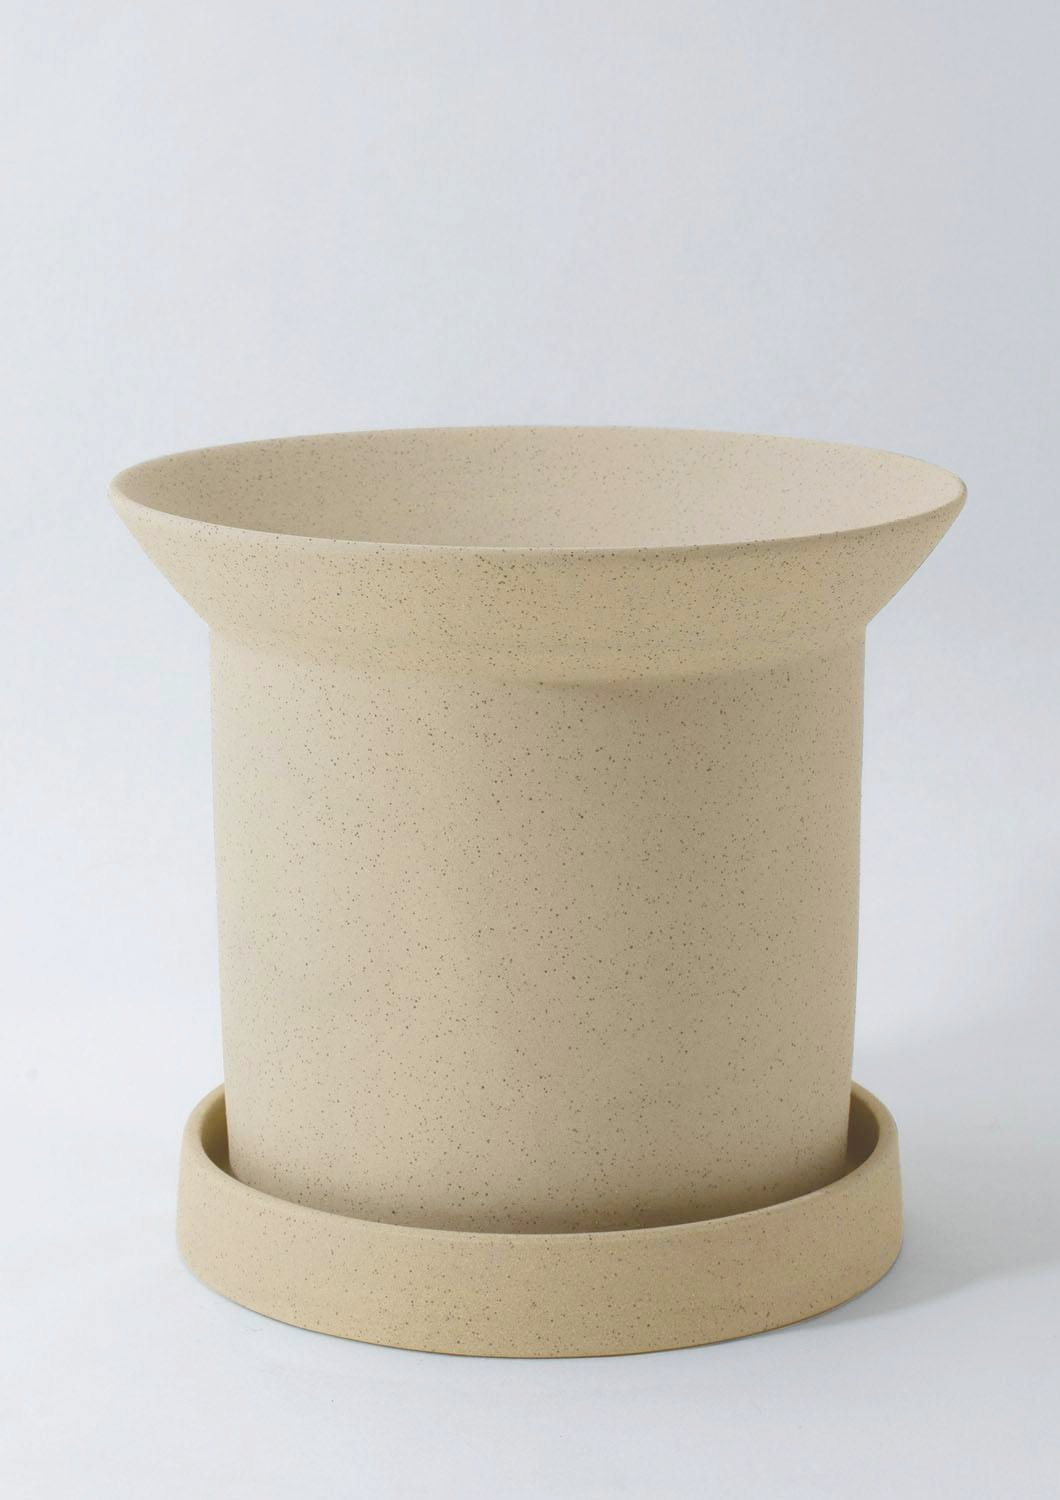 Sandstone Plant Pot - Large Buff